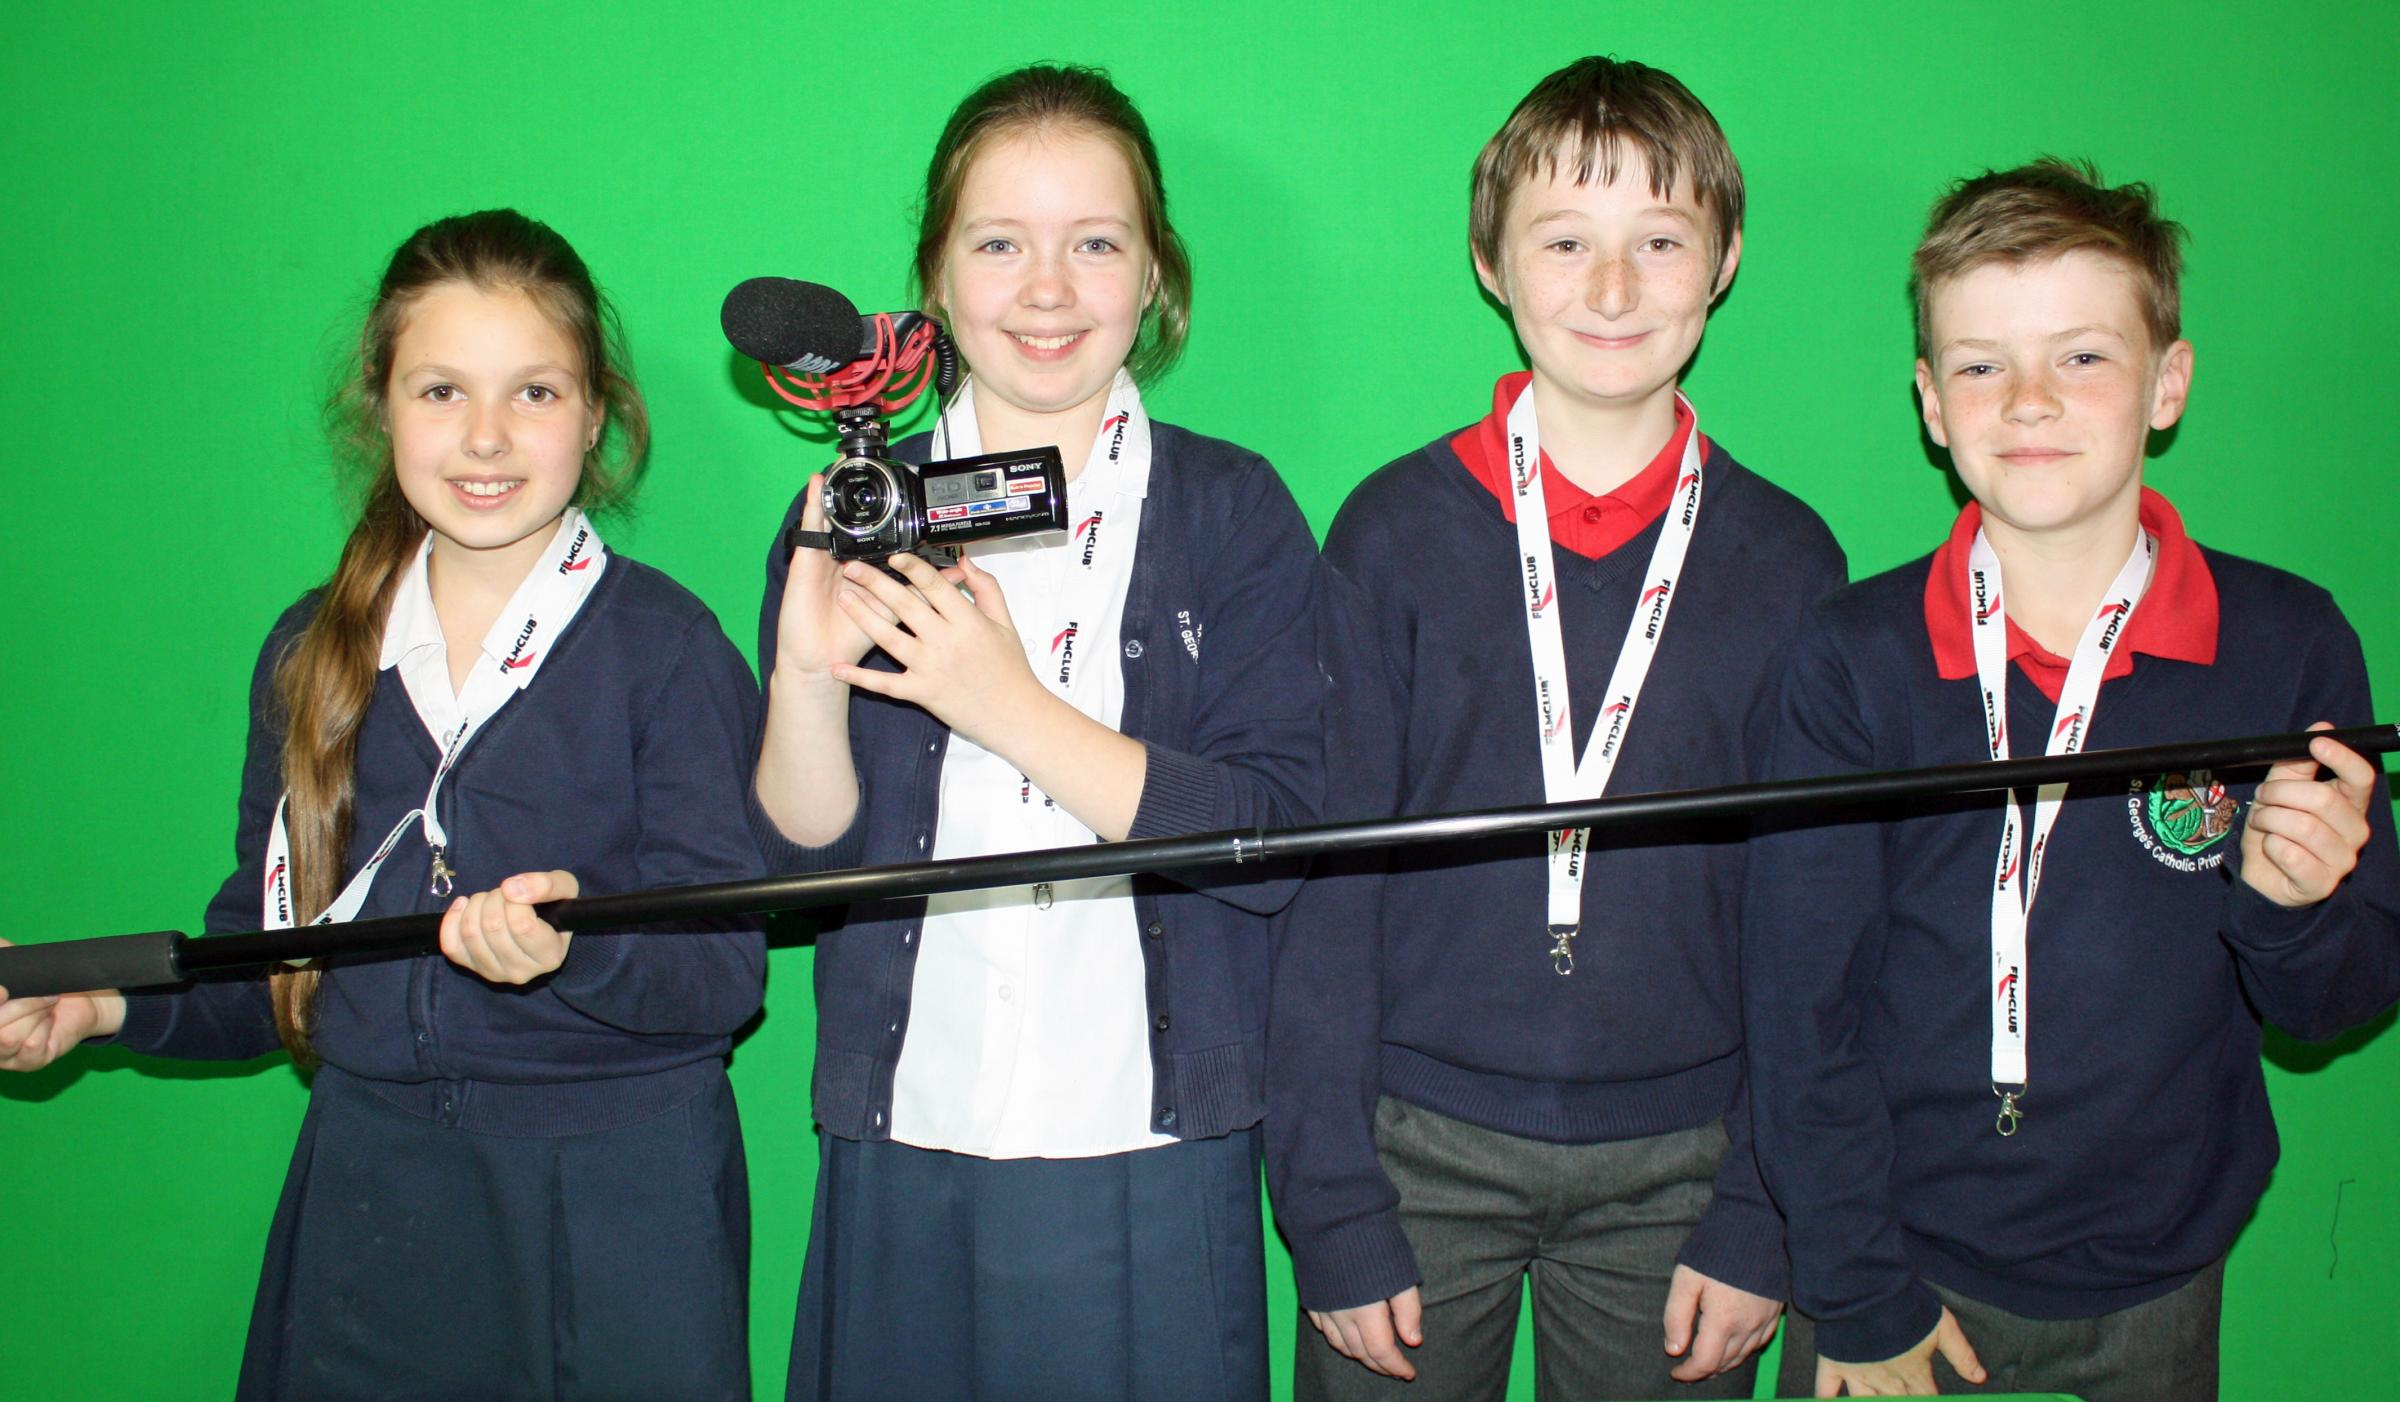 Pupils pick up film prize